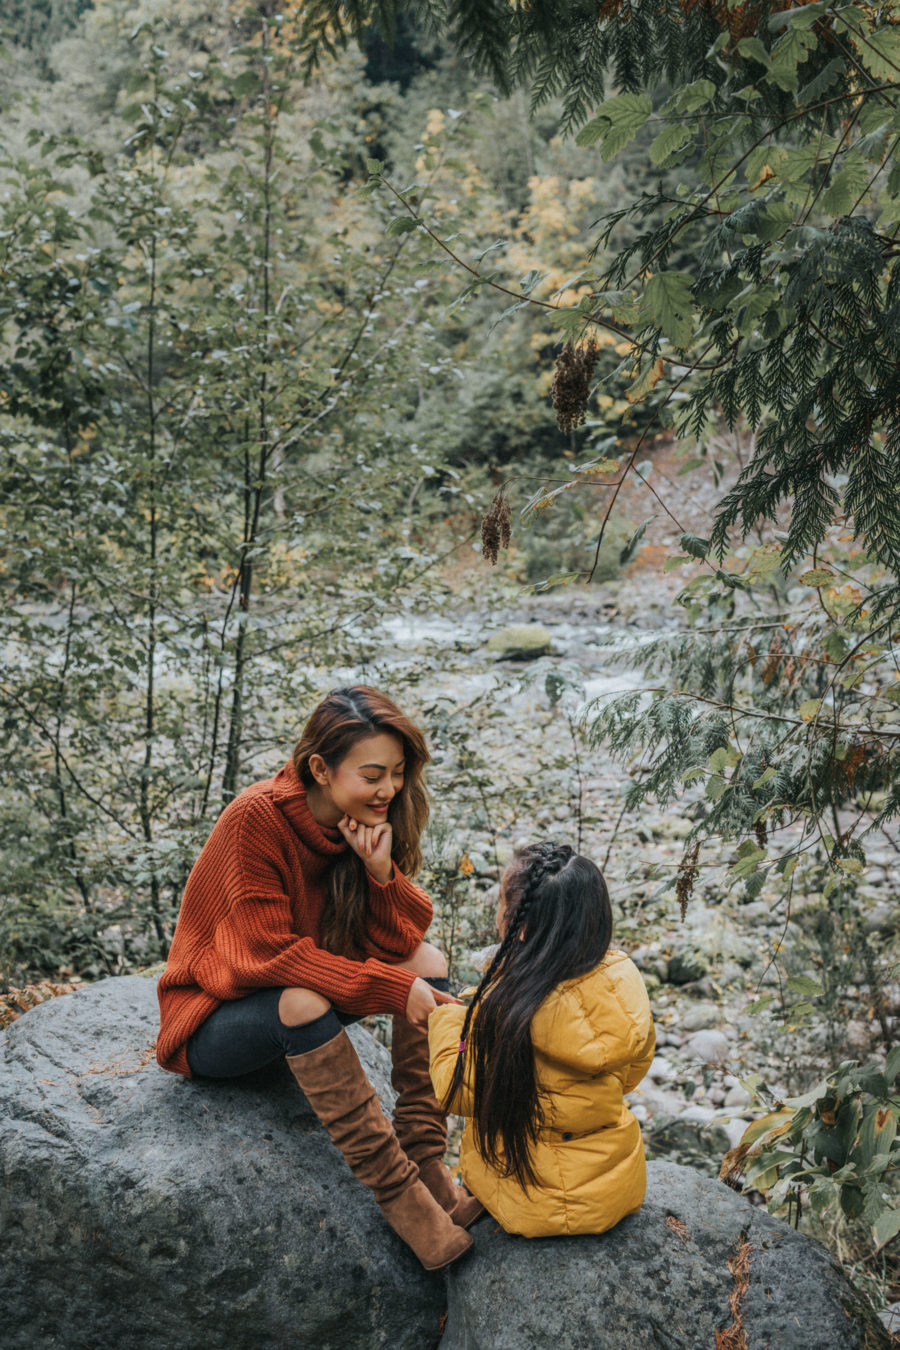 fall activities, hiking in the mountains, mountain family photos with kids, hiking with kids, fall in oregon // NotJessFashion.com